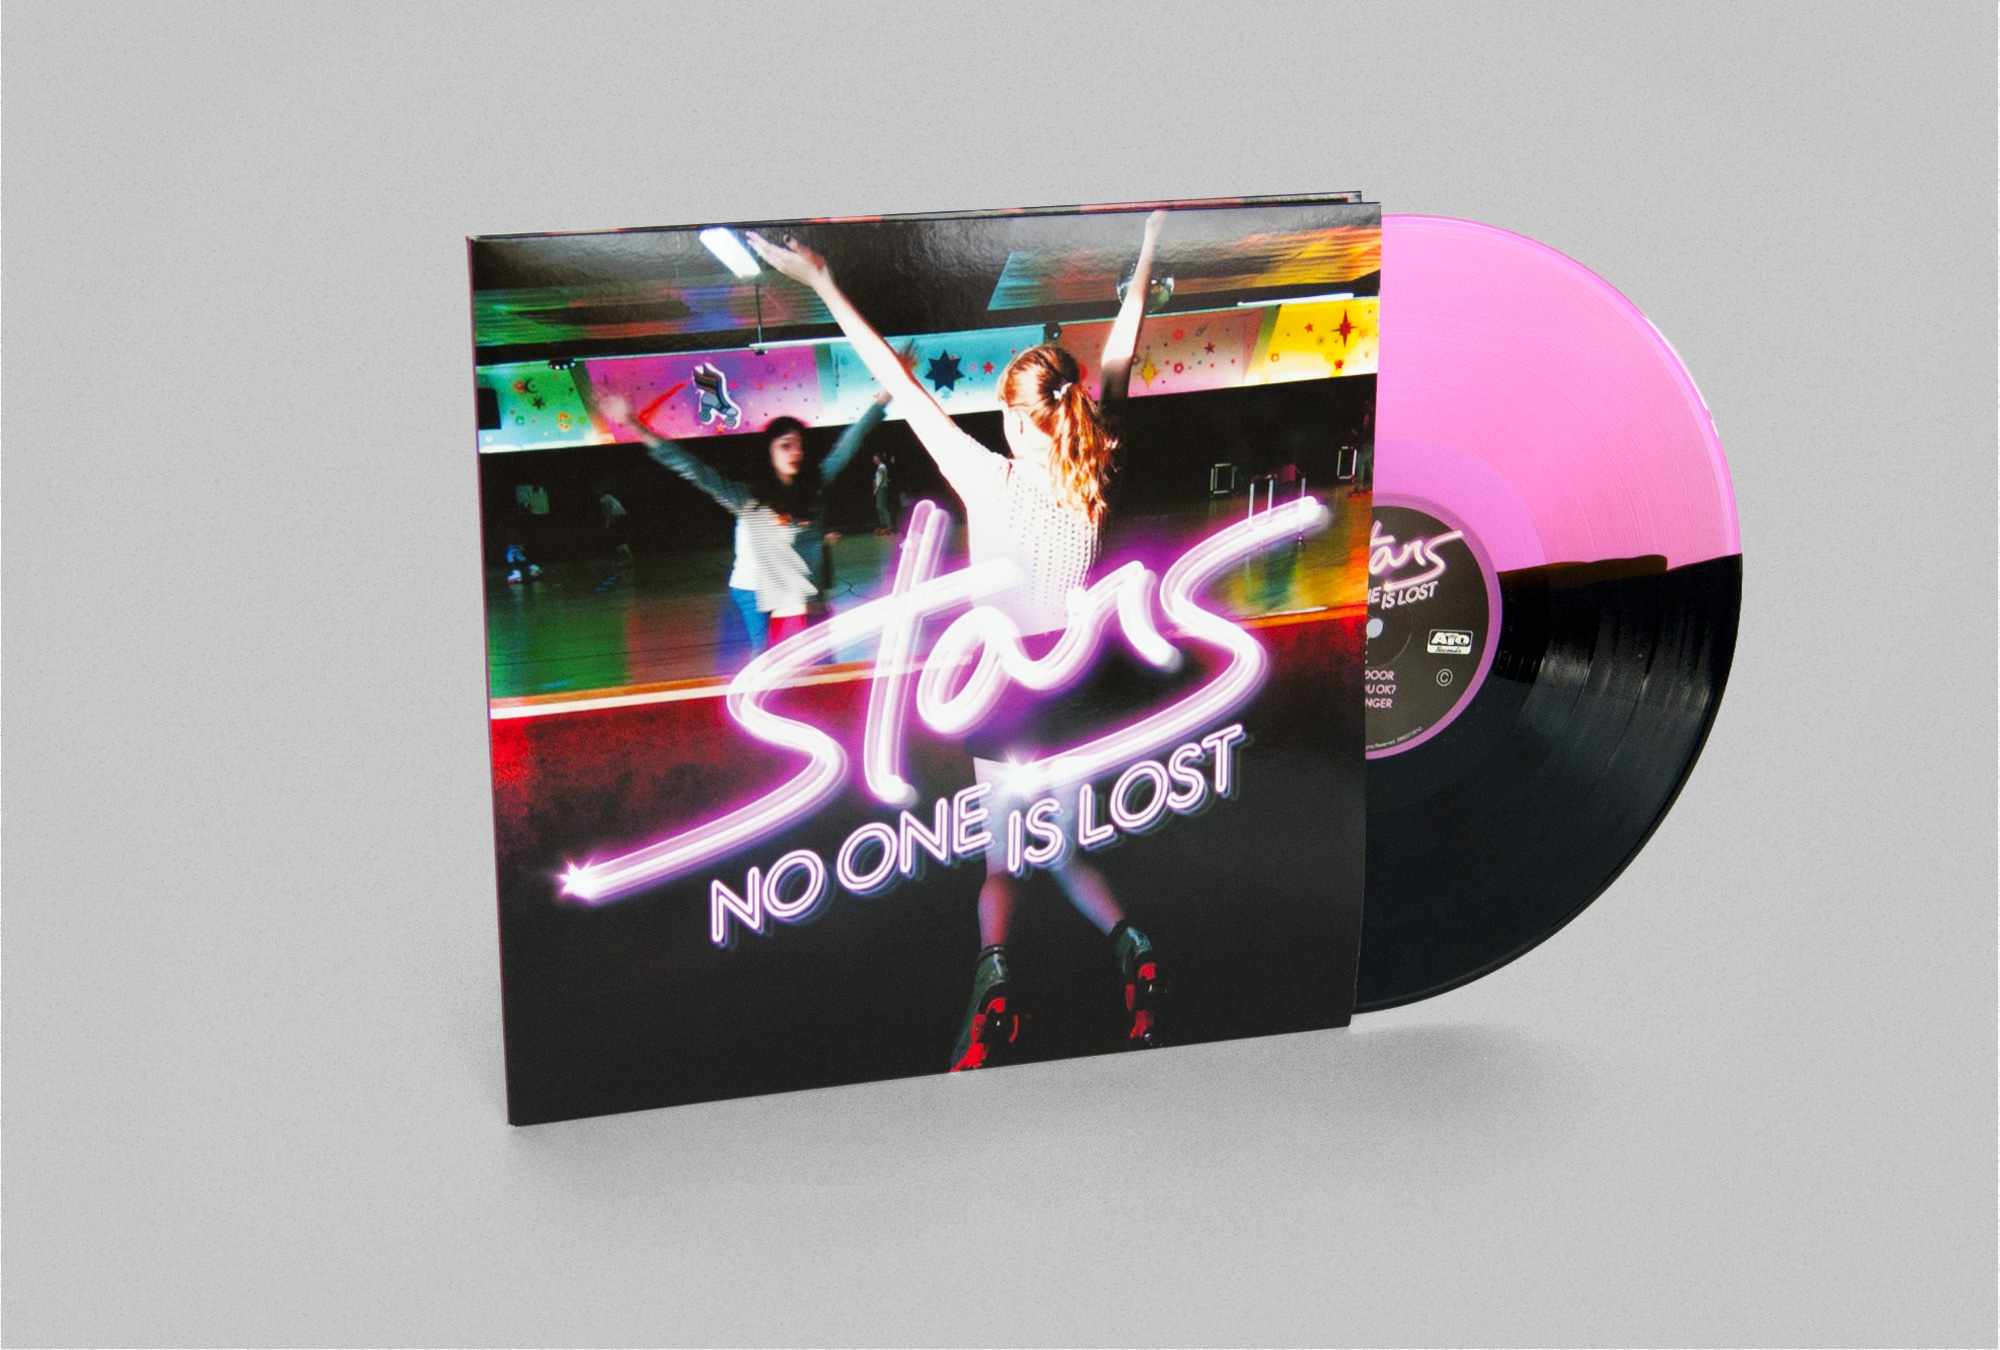 Stars No One Is Lost Vinyl Design